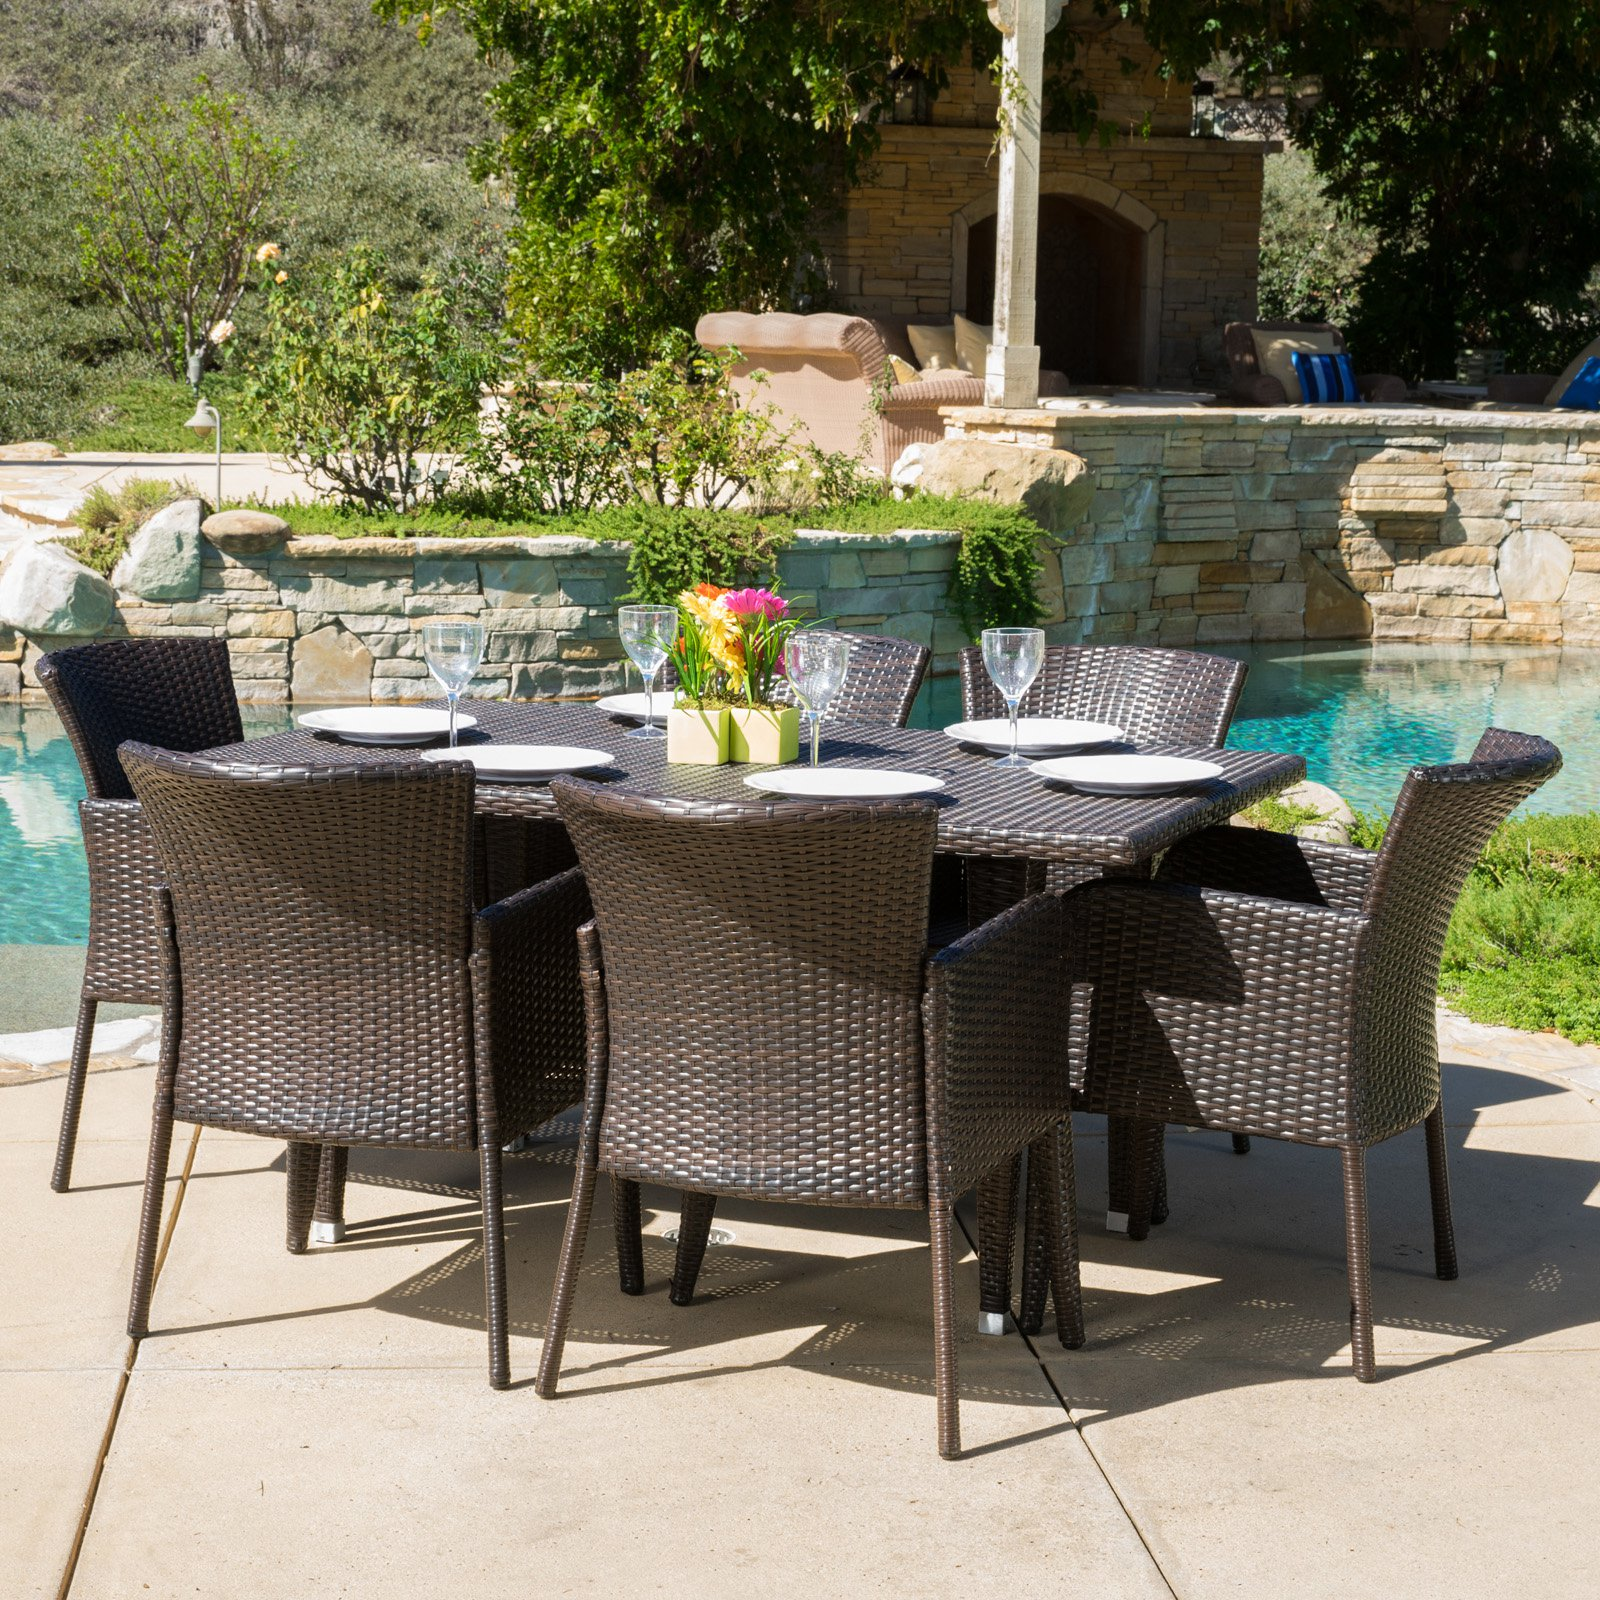 Best Selling Home Decor Rio De Janeiro Wicker 7 Piece Rectangular Patio Dining Set